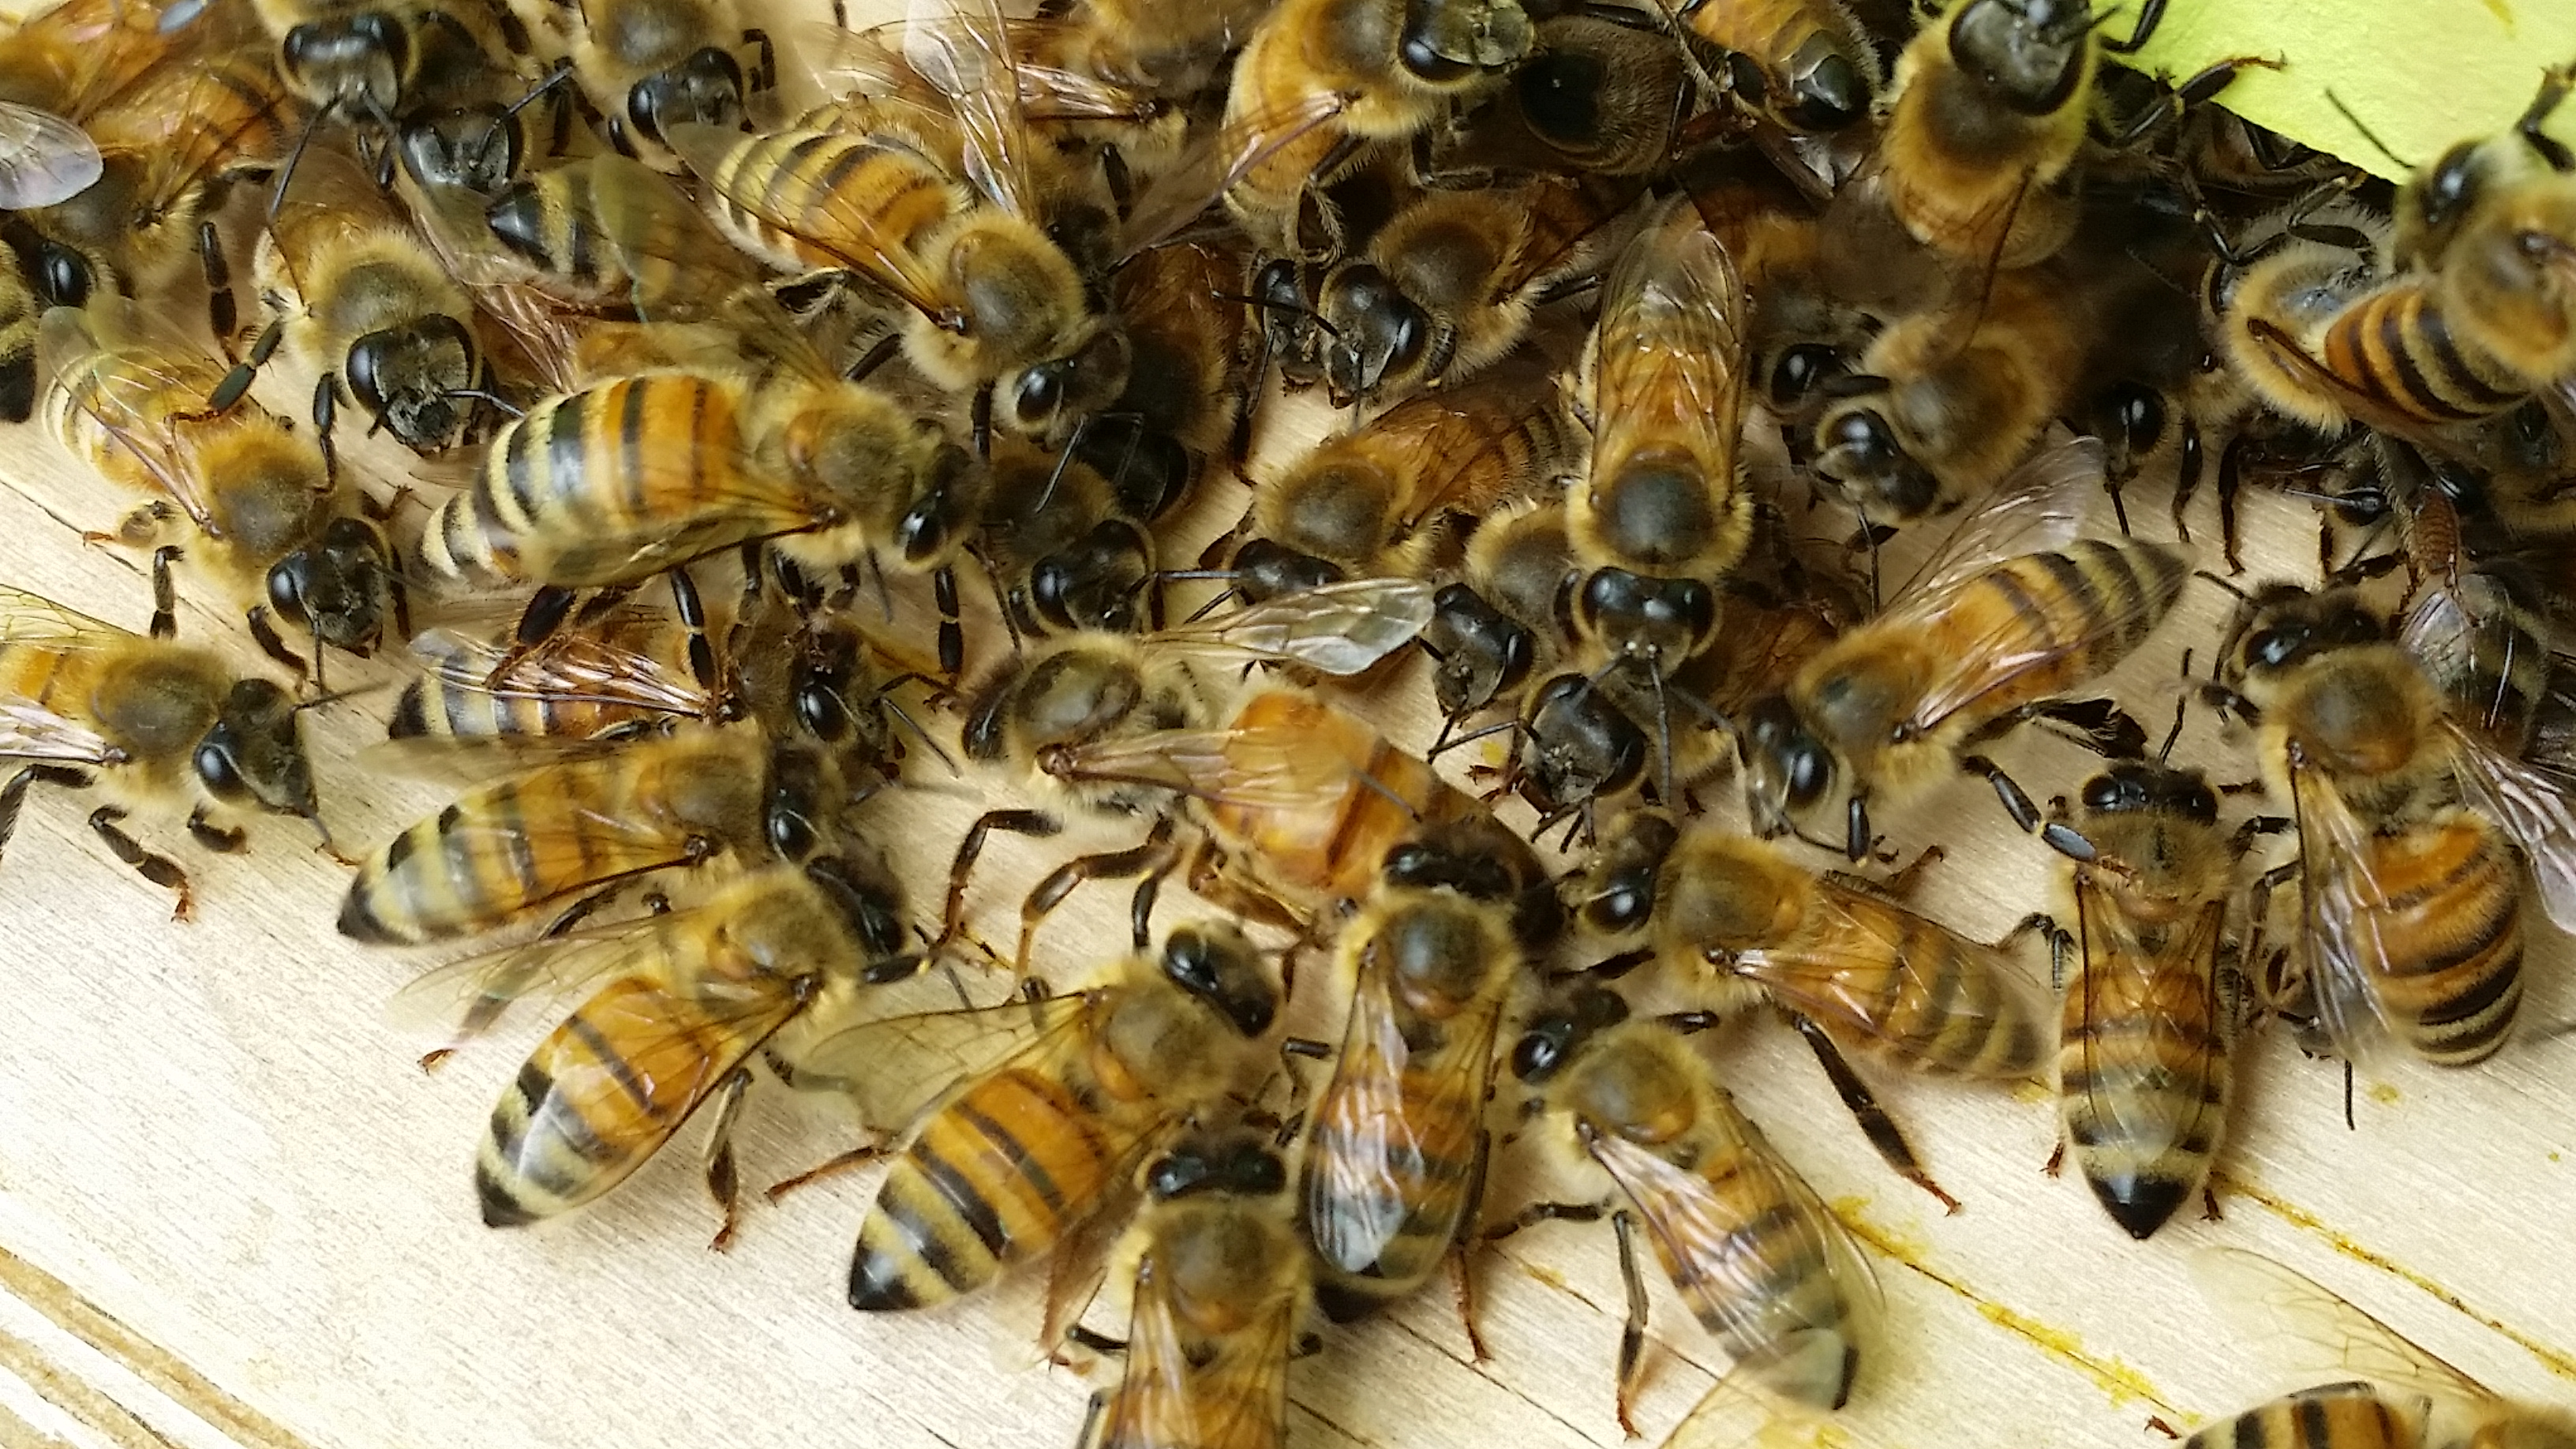 One of our Queen Bees